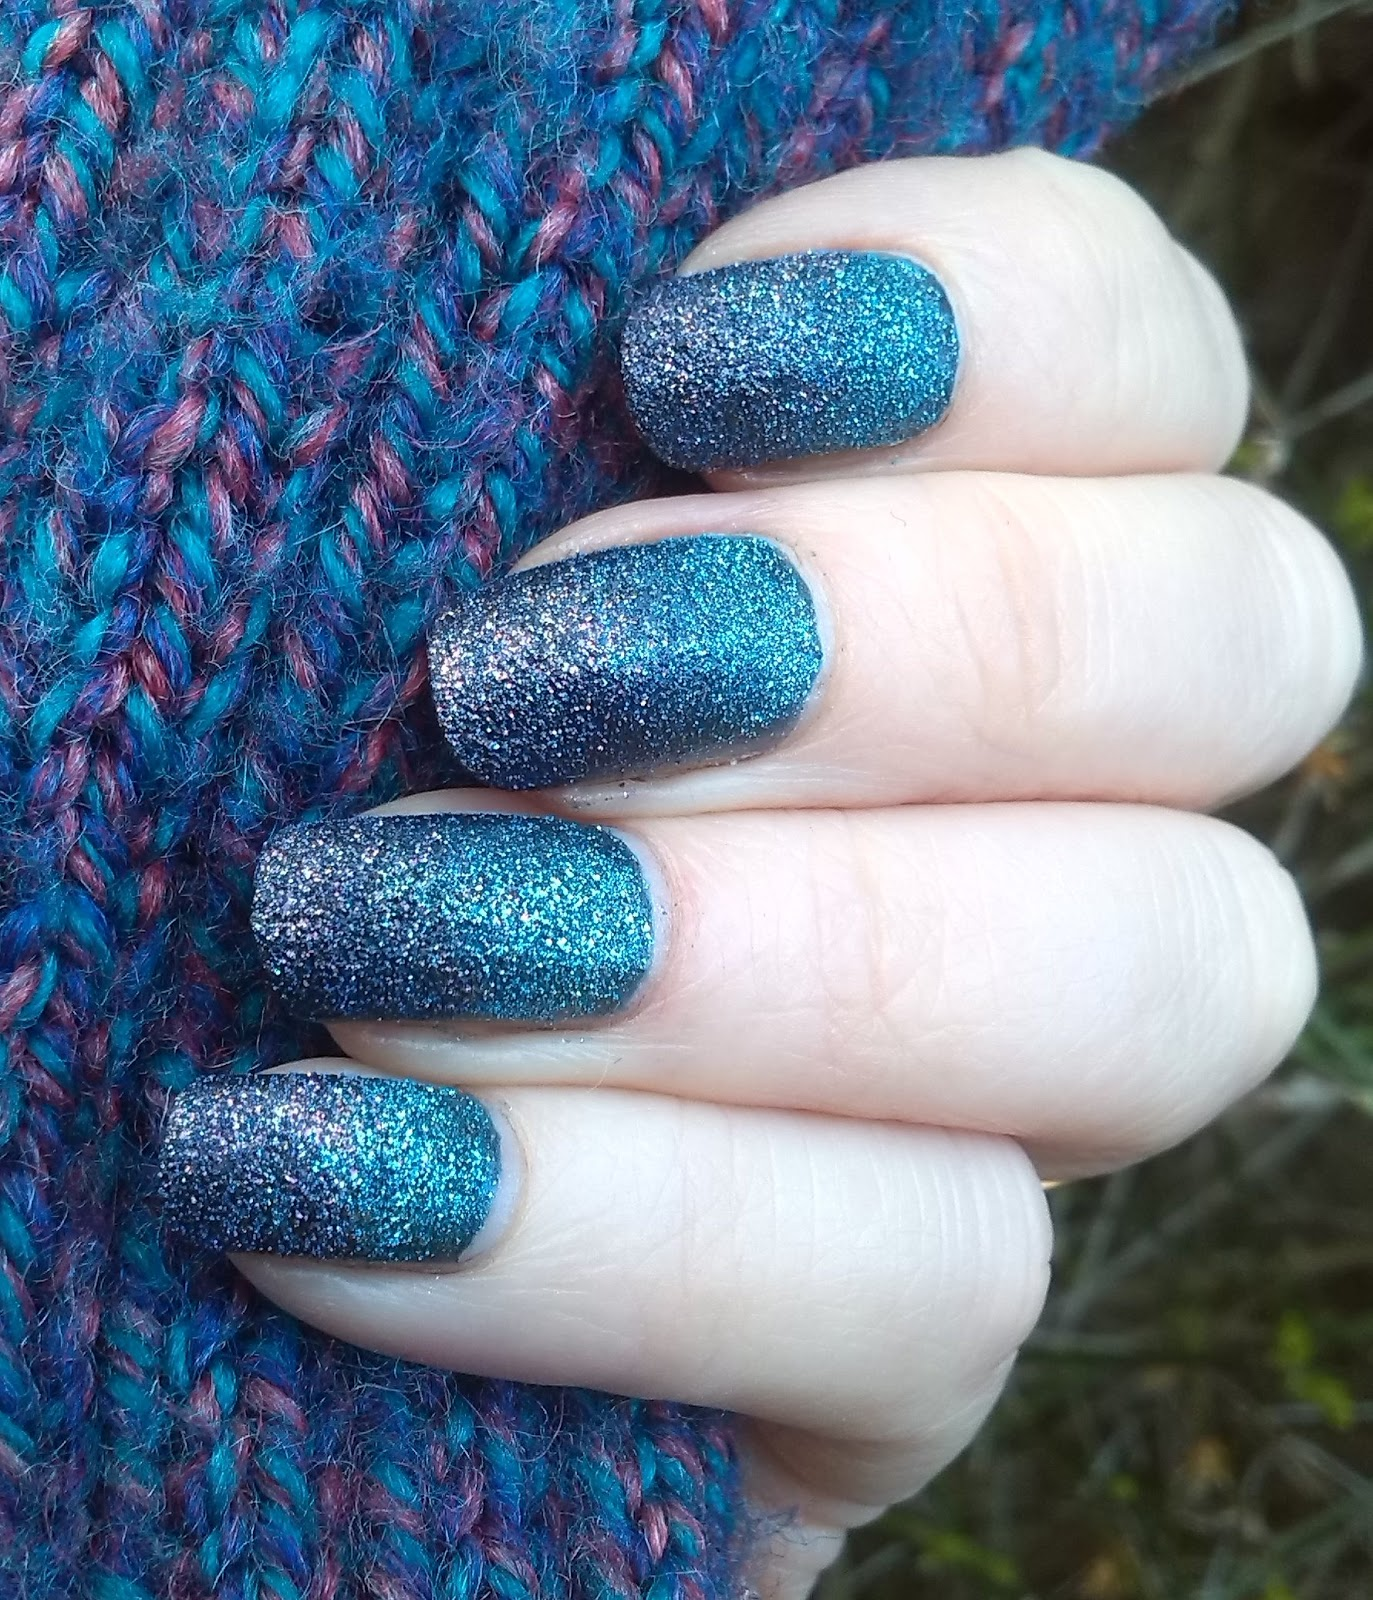 Avon Stardust Polished Plum and Teal Glitter